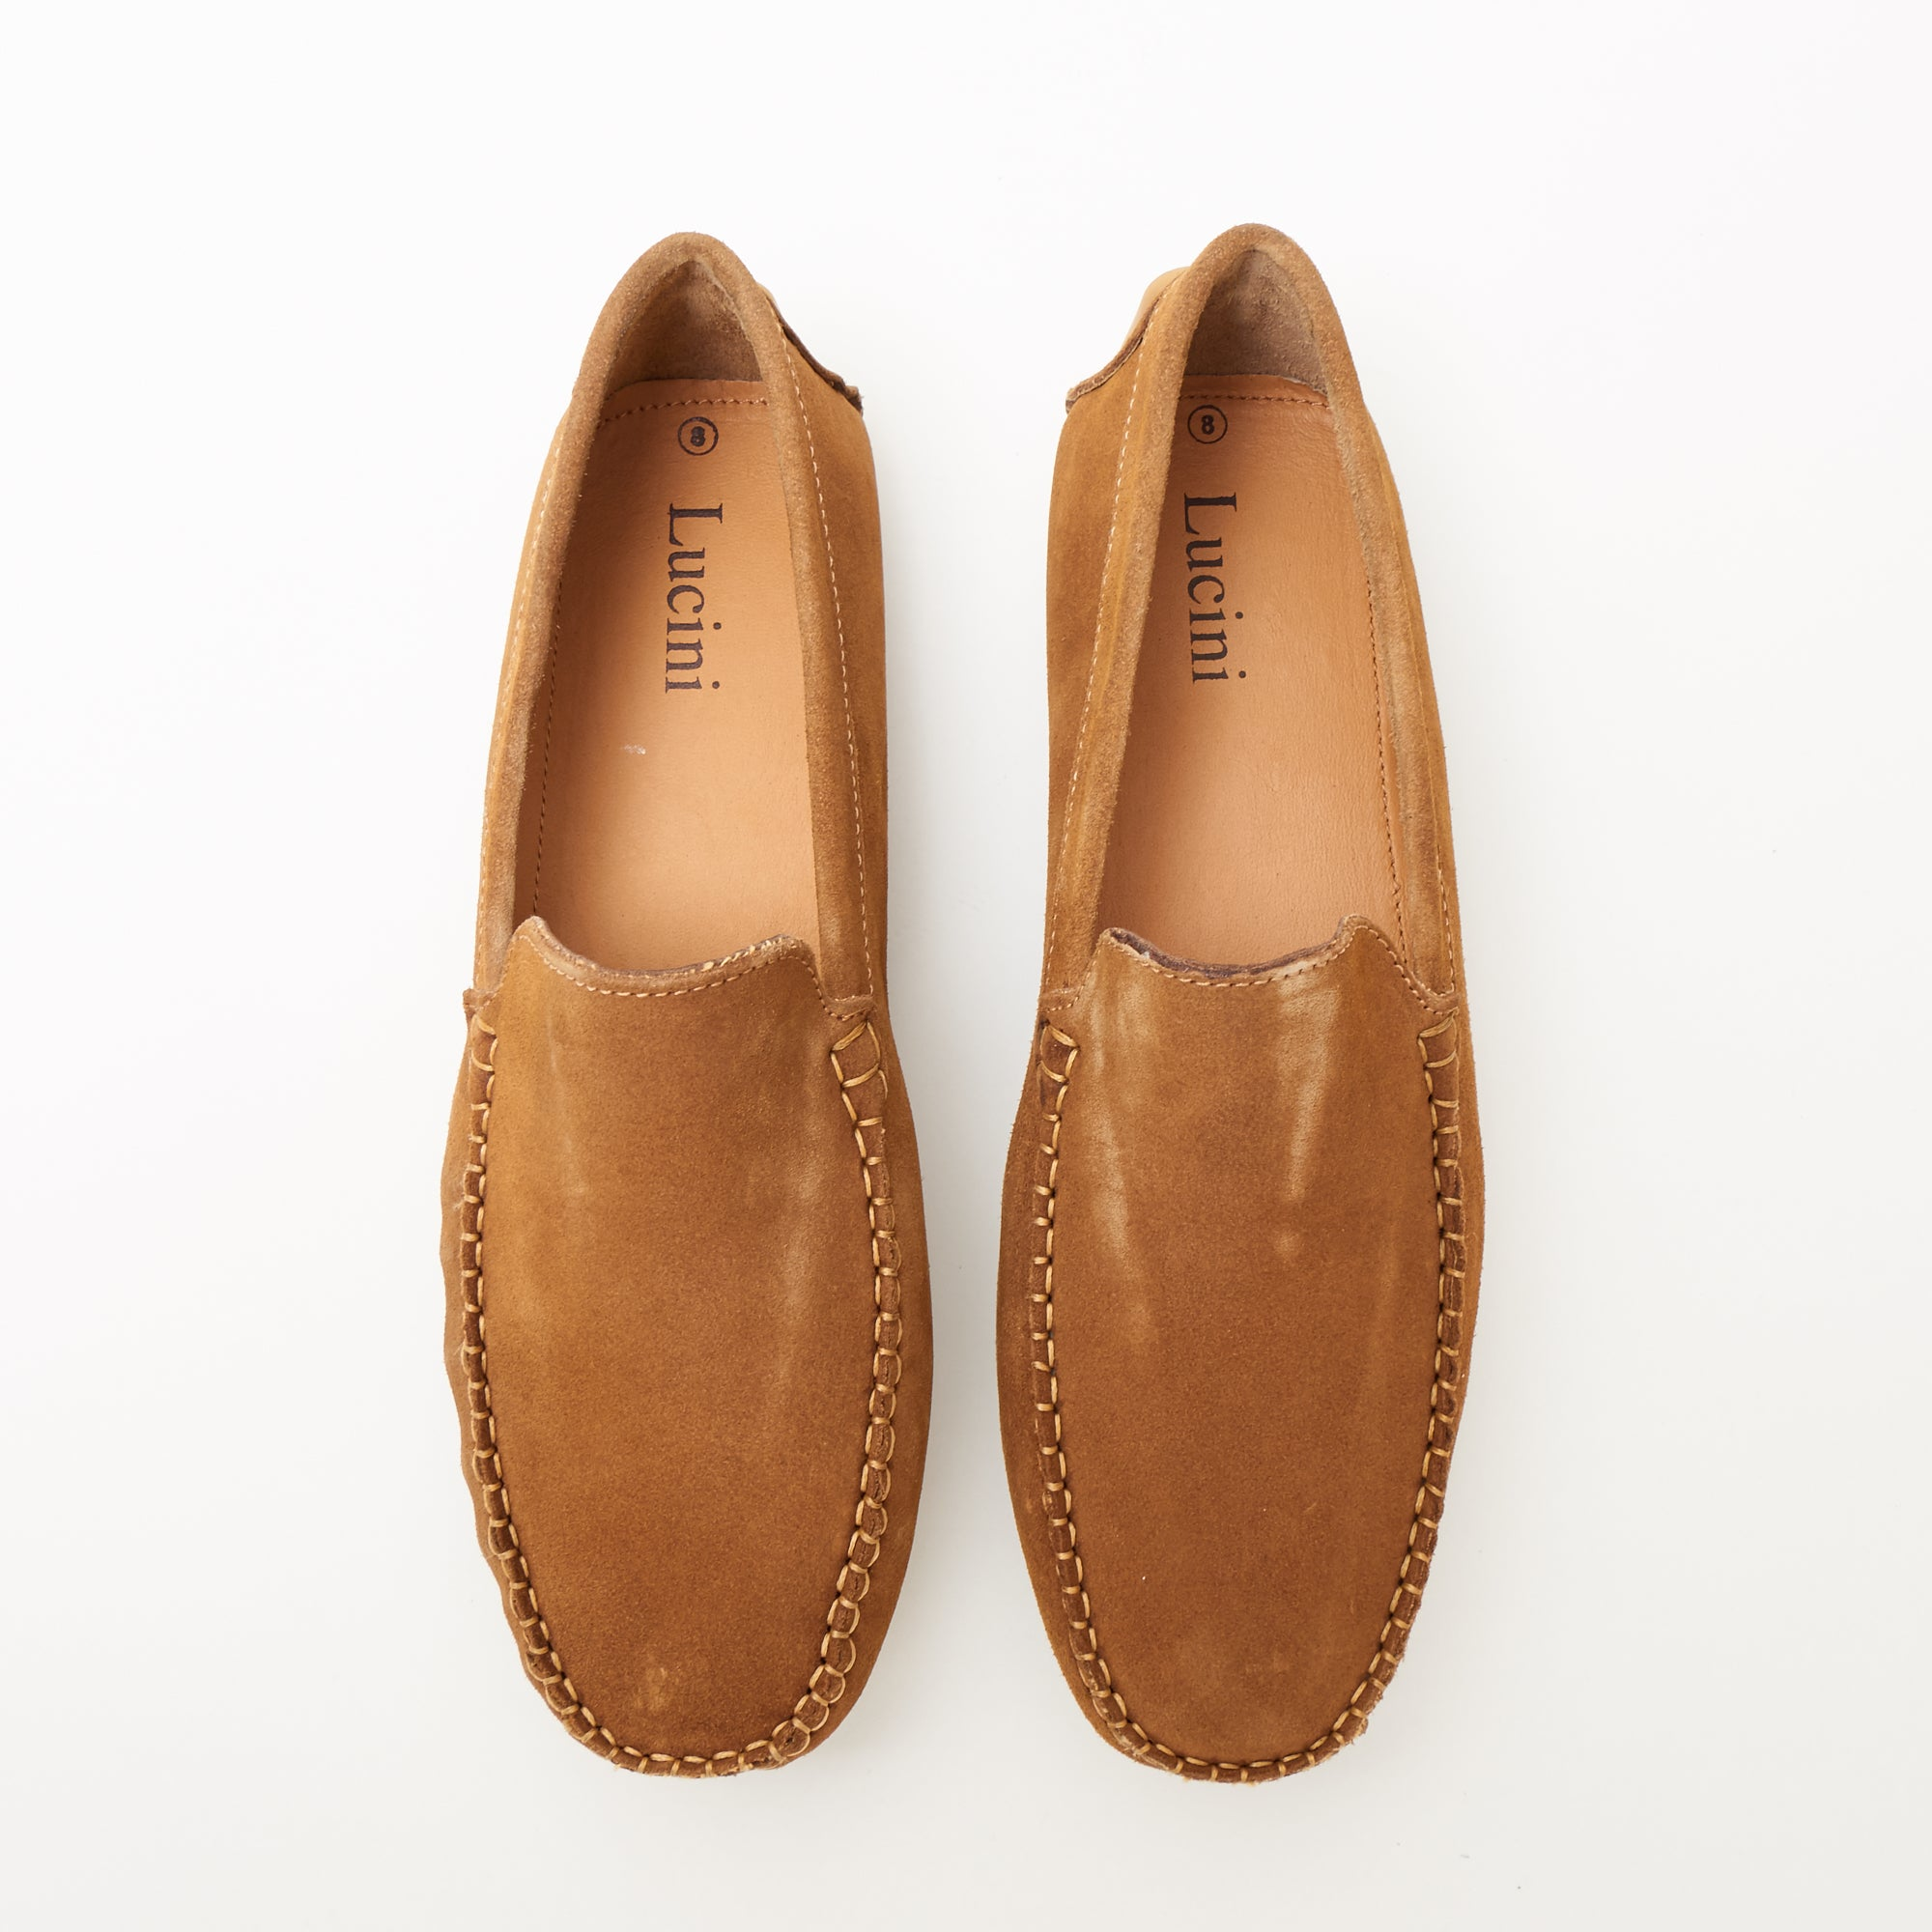 Mens Suede Casual Slip On Shoes - 4611-P_Tan